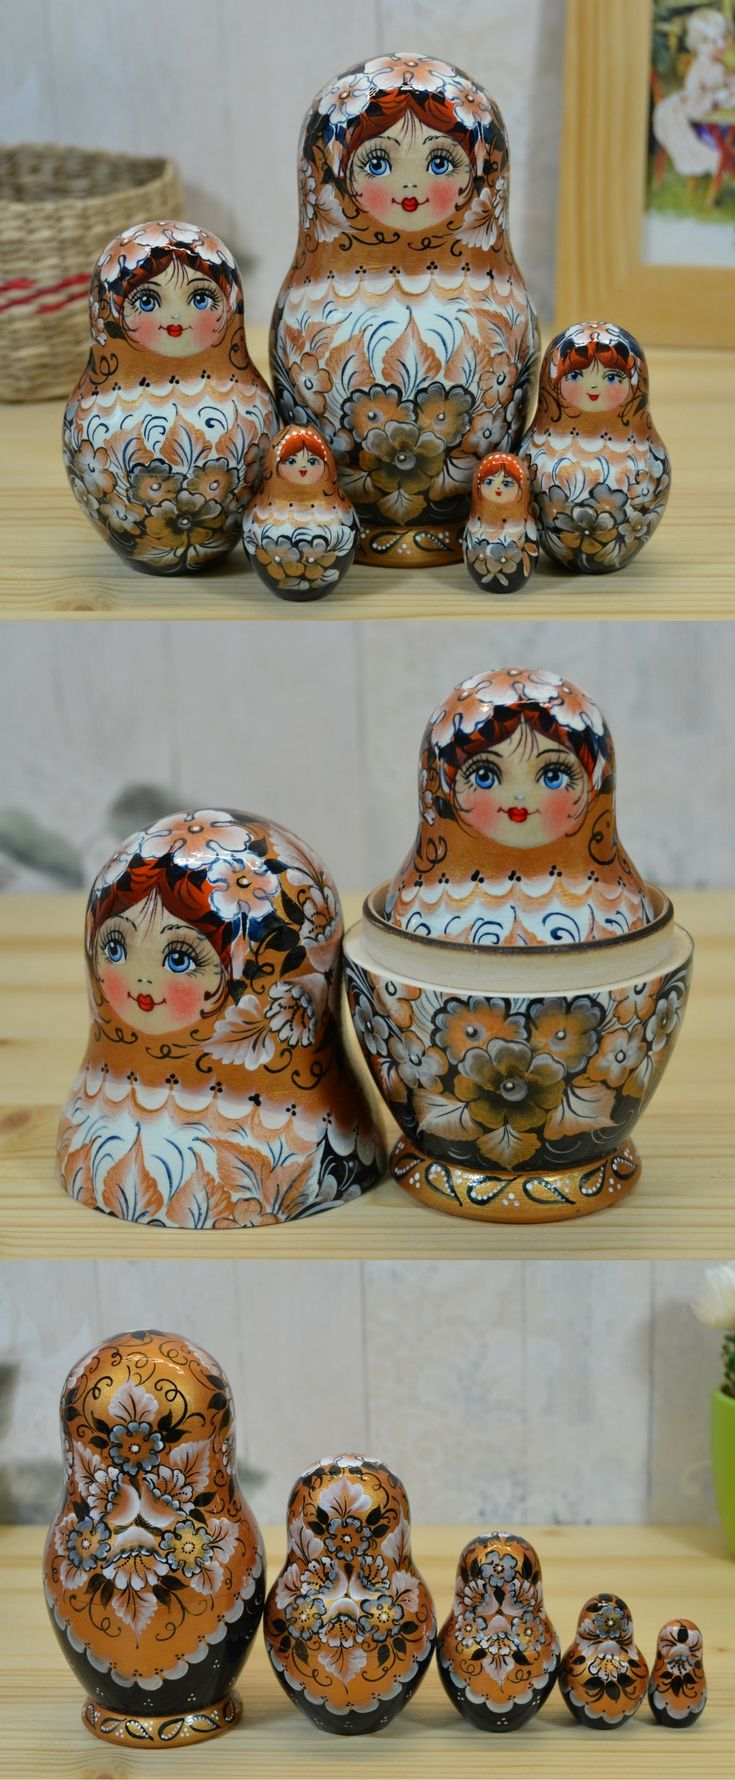 Wooden matryoshka doll in bronze, white and black design, hand painted by artist Nelly Marchenko. See more lovely nesting dolls at: www.bestrussiandolls.etsy.com